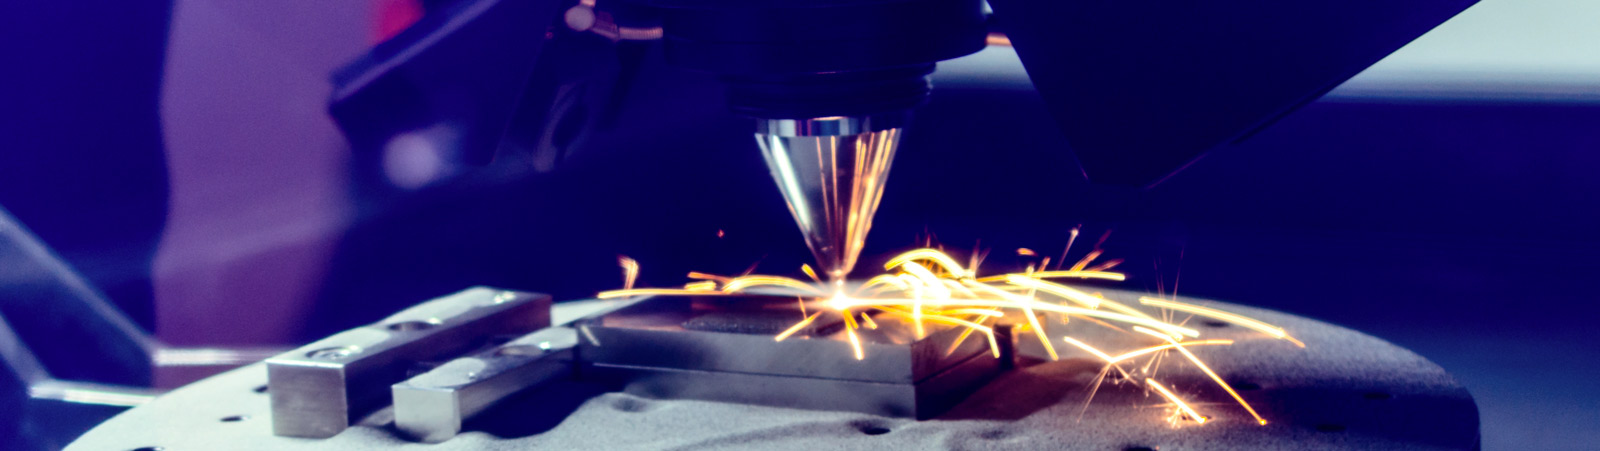 Additive Manufacturing Material Testing